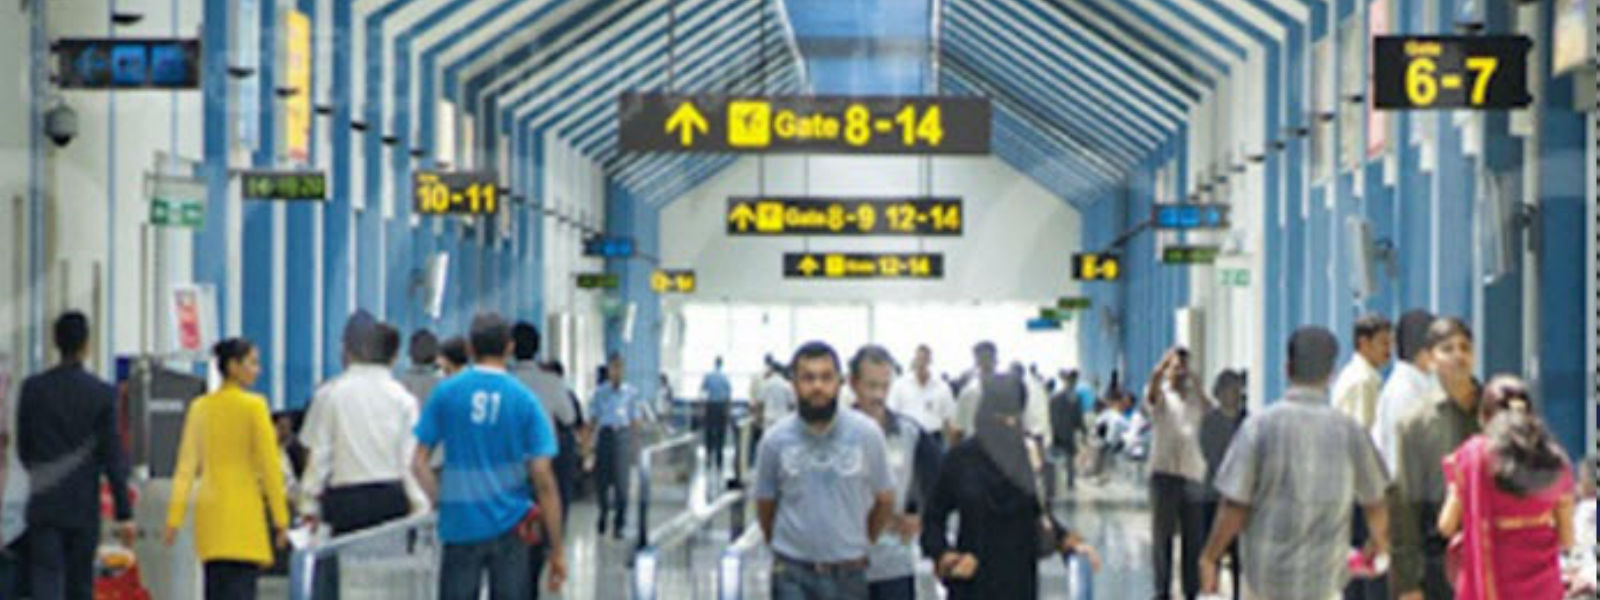 622 passengers transferred to quarantine facilities